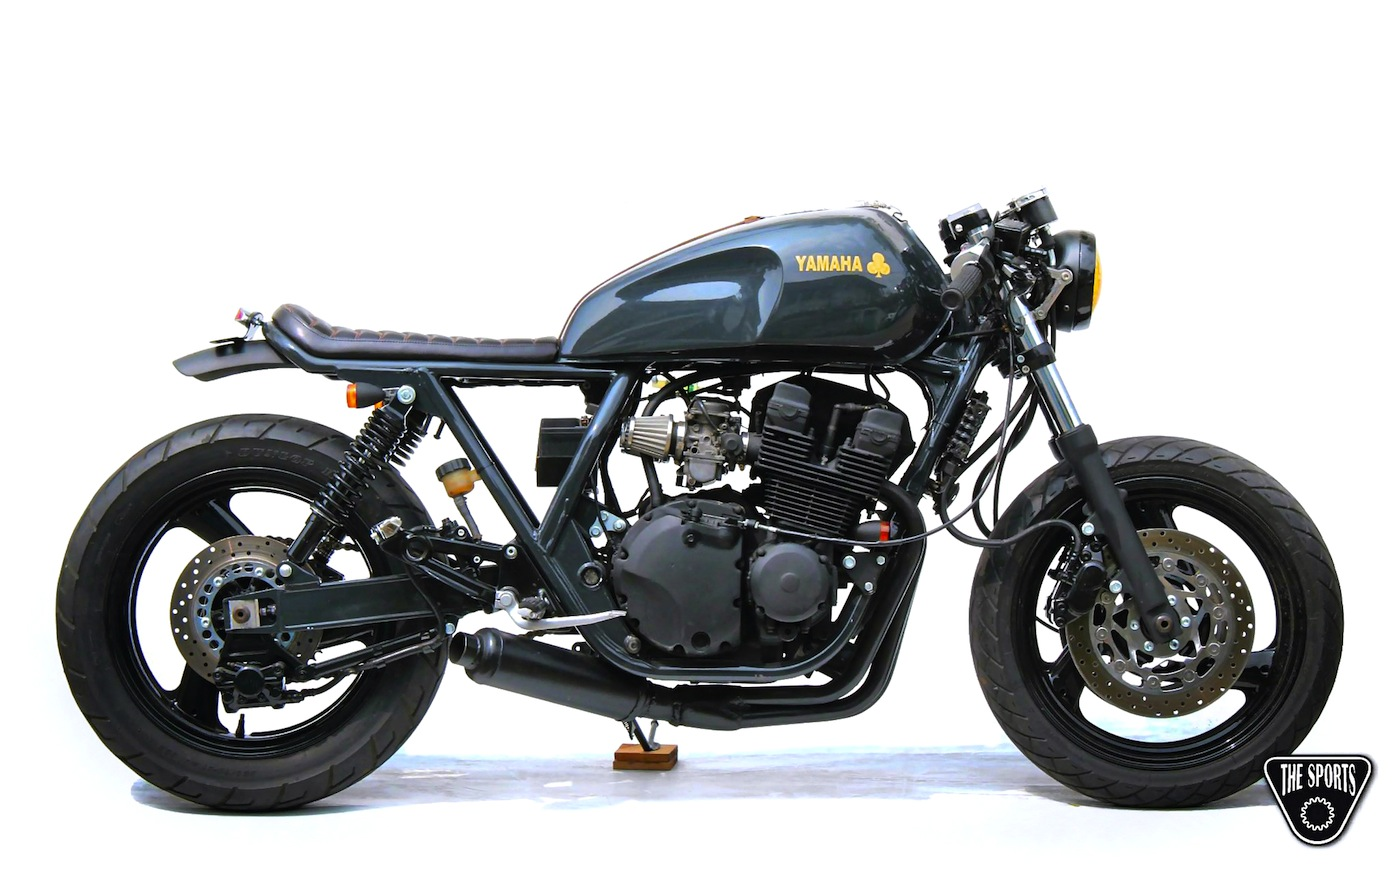 Xjr 400 By The Sports Inazuma Caf 233 Racer